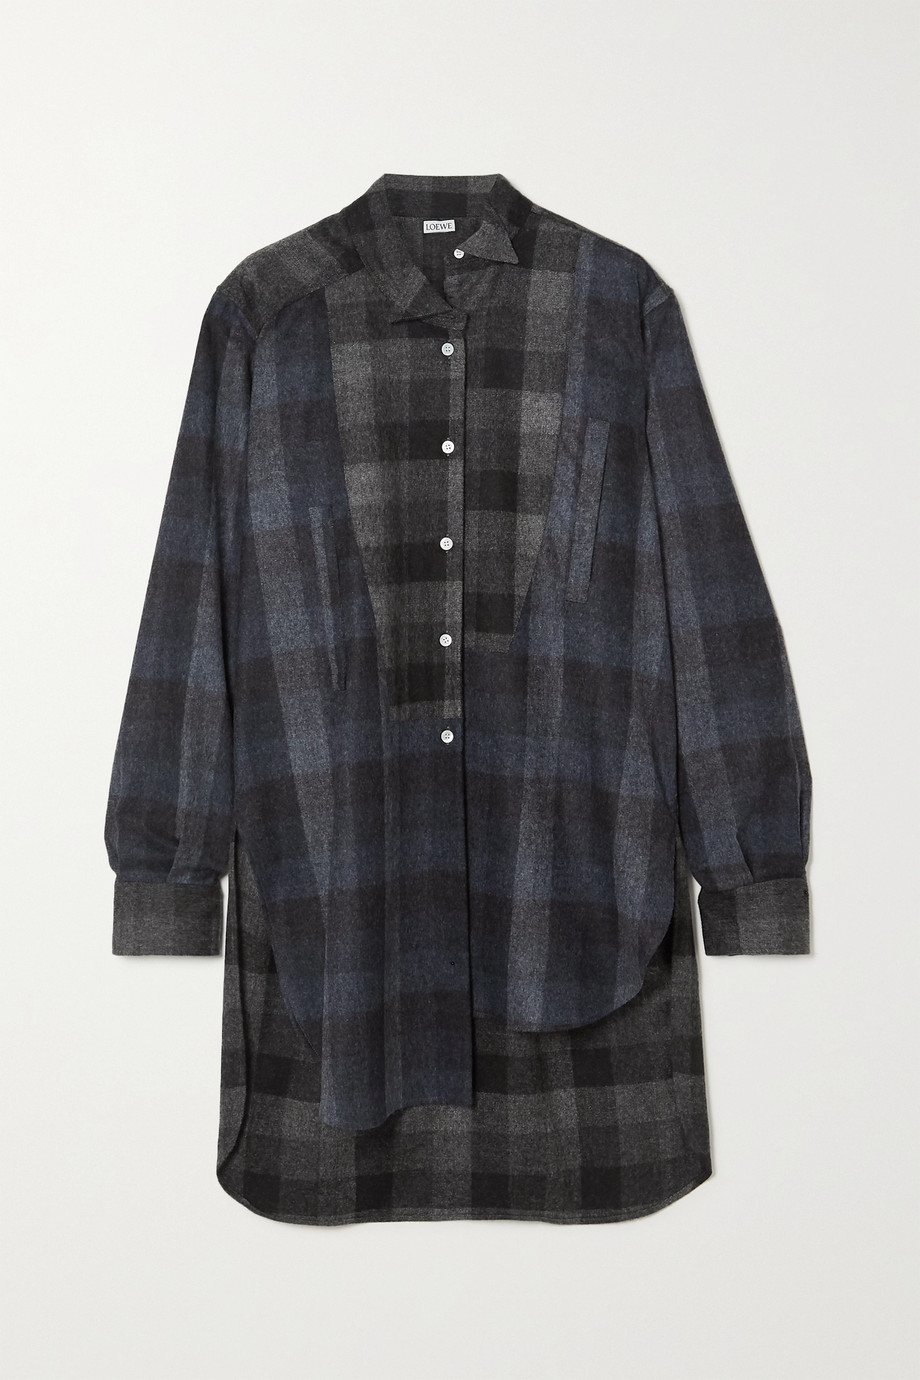 Loewe Checked wool-flannel shirt